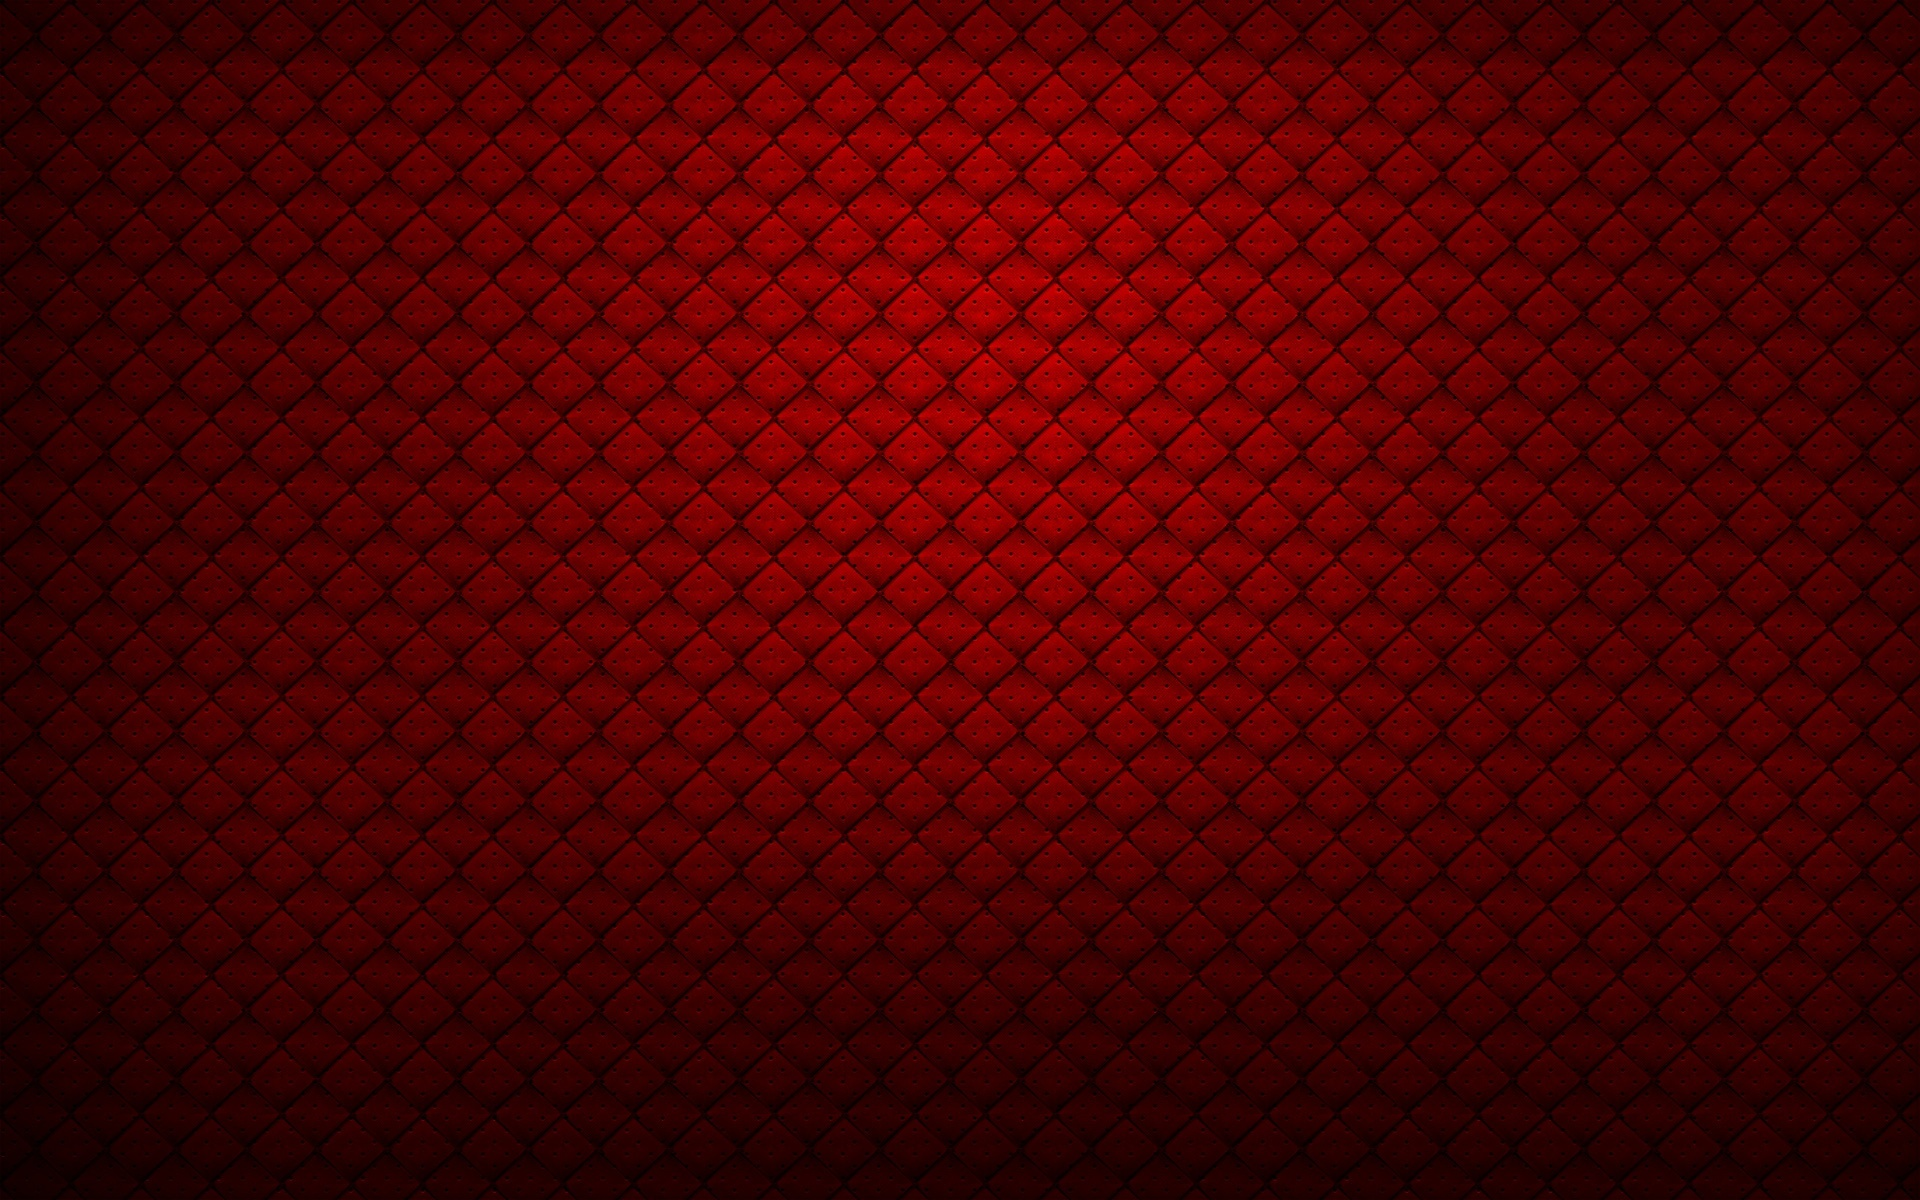 Remarkable Black and Red Tile Wallpapers for PC 1920 x 1200 · 736 kB · jpeg